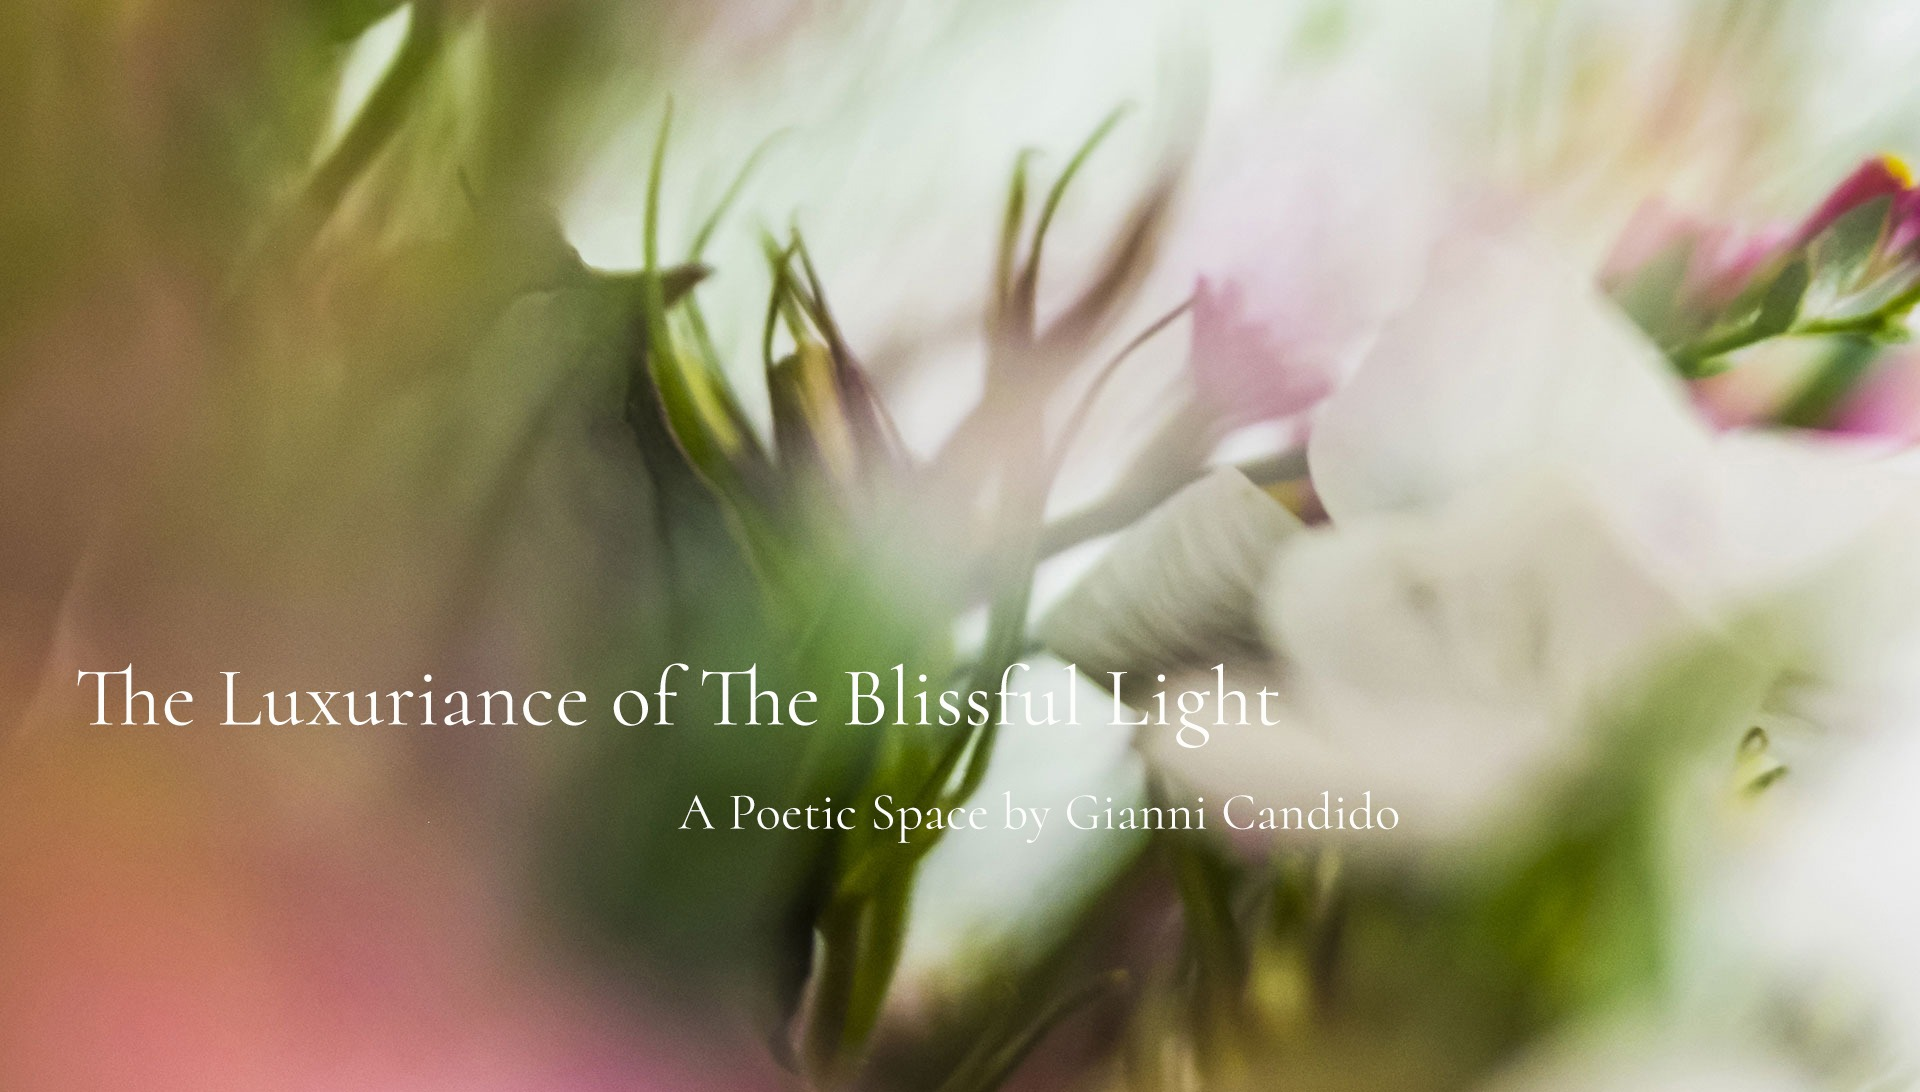 The Luxuriance of The Blissful Light - A Poetic Space by Gianni Candido